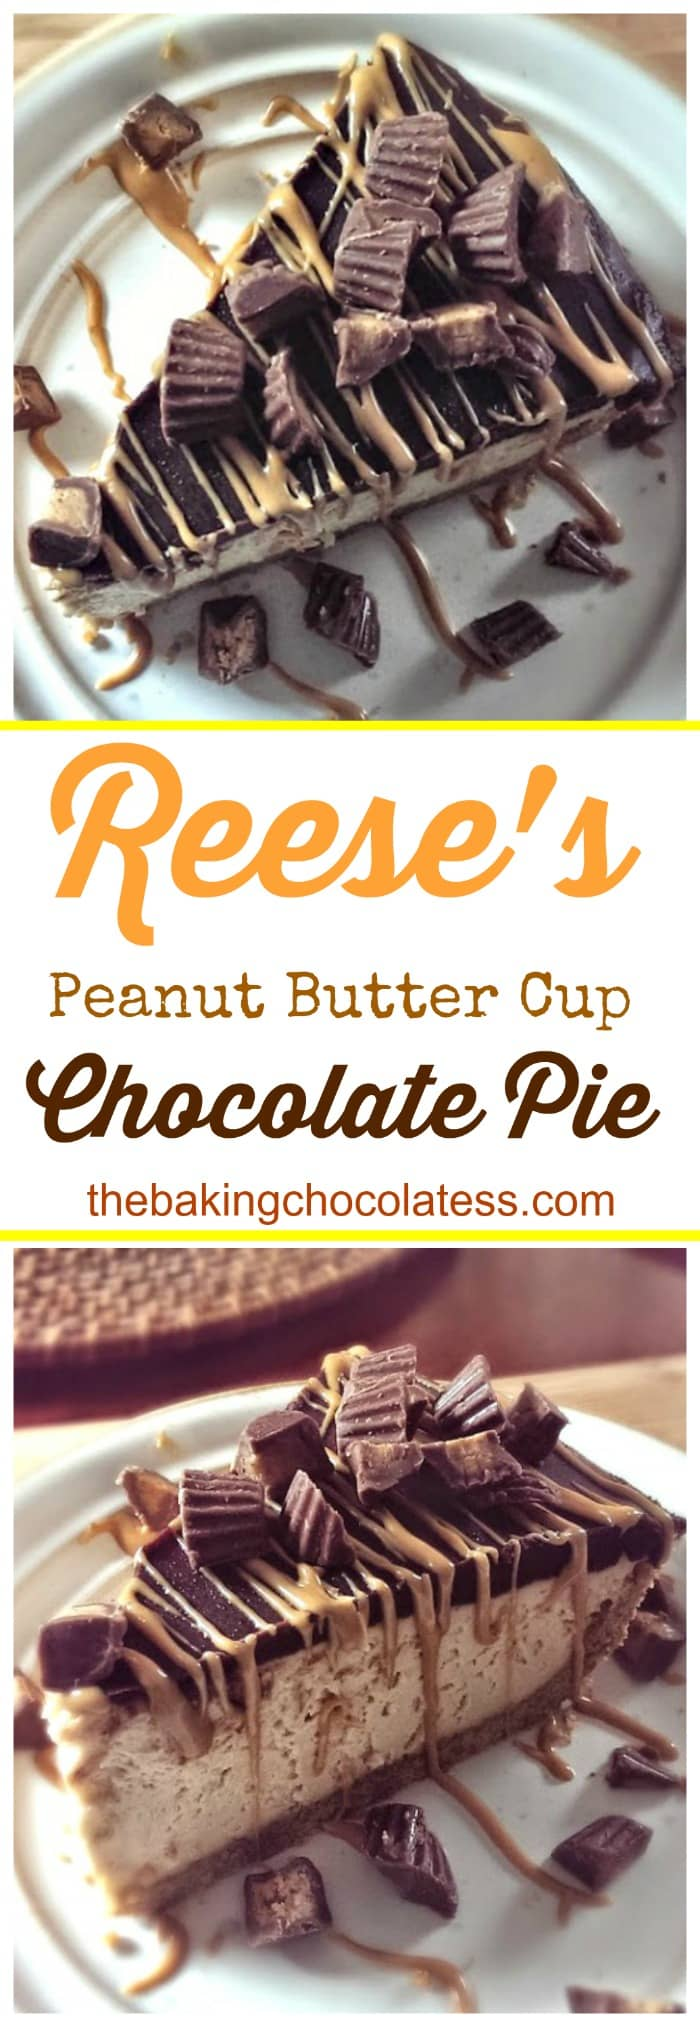 Reese's Peanut Butter Cup Chocolate Pie - It's Phenomenal! #peanutbutter #reeses #cups #nobake #chocolate #peanutbutter